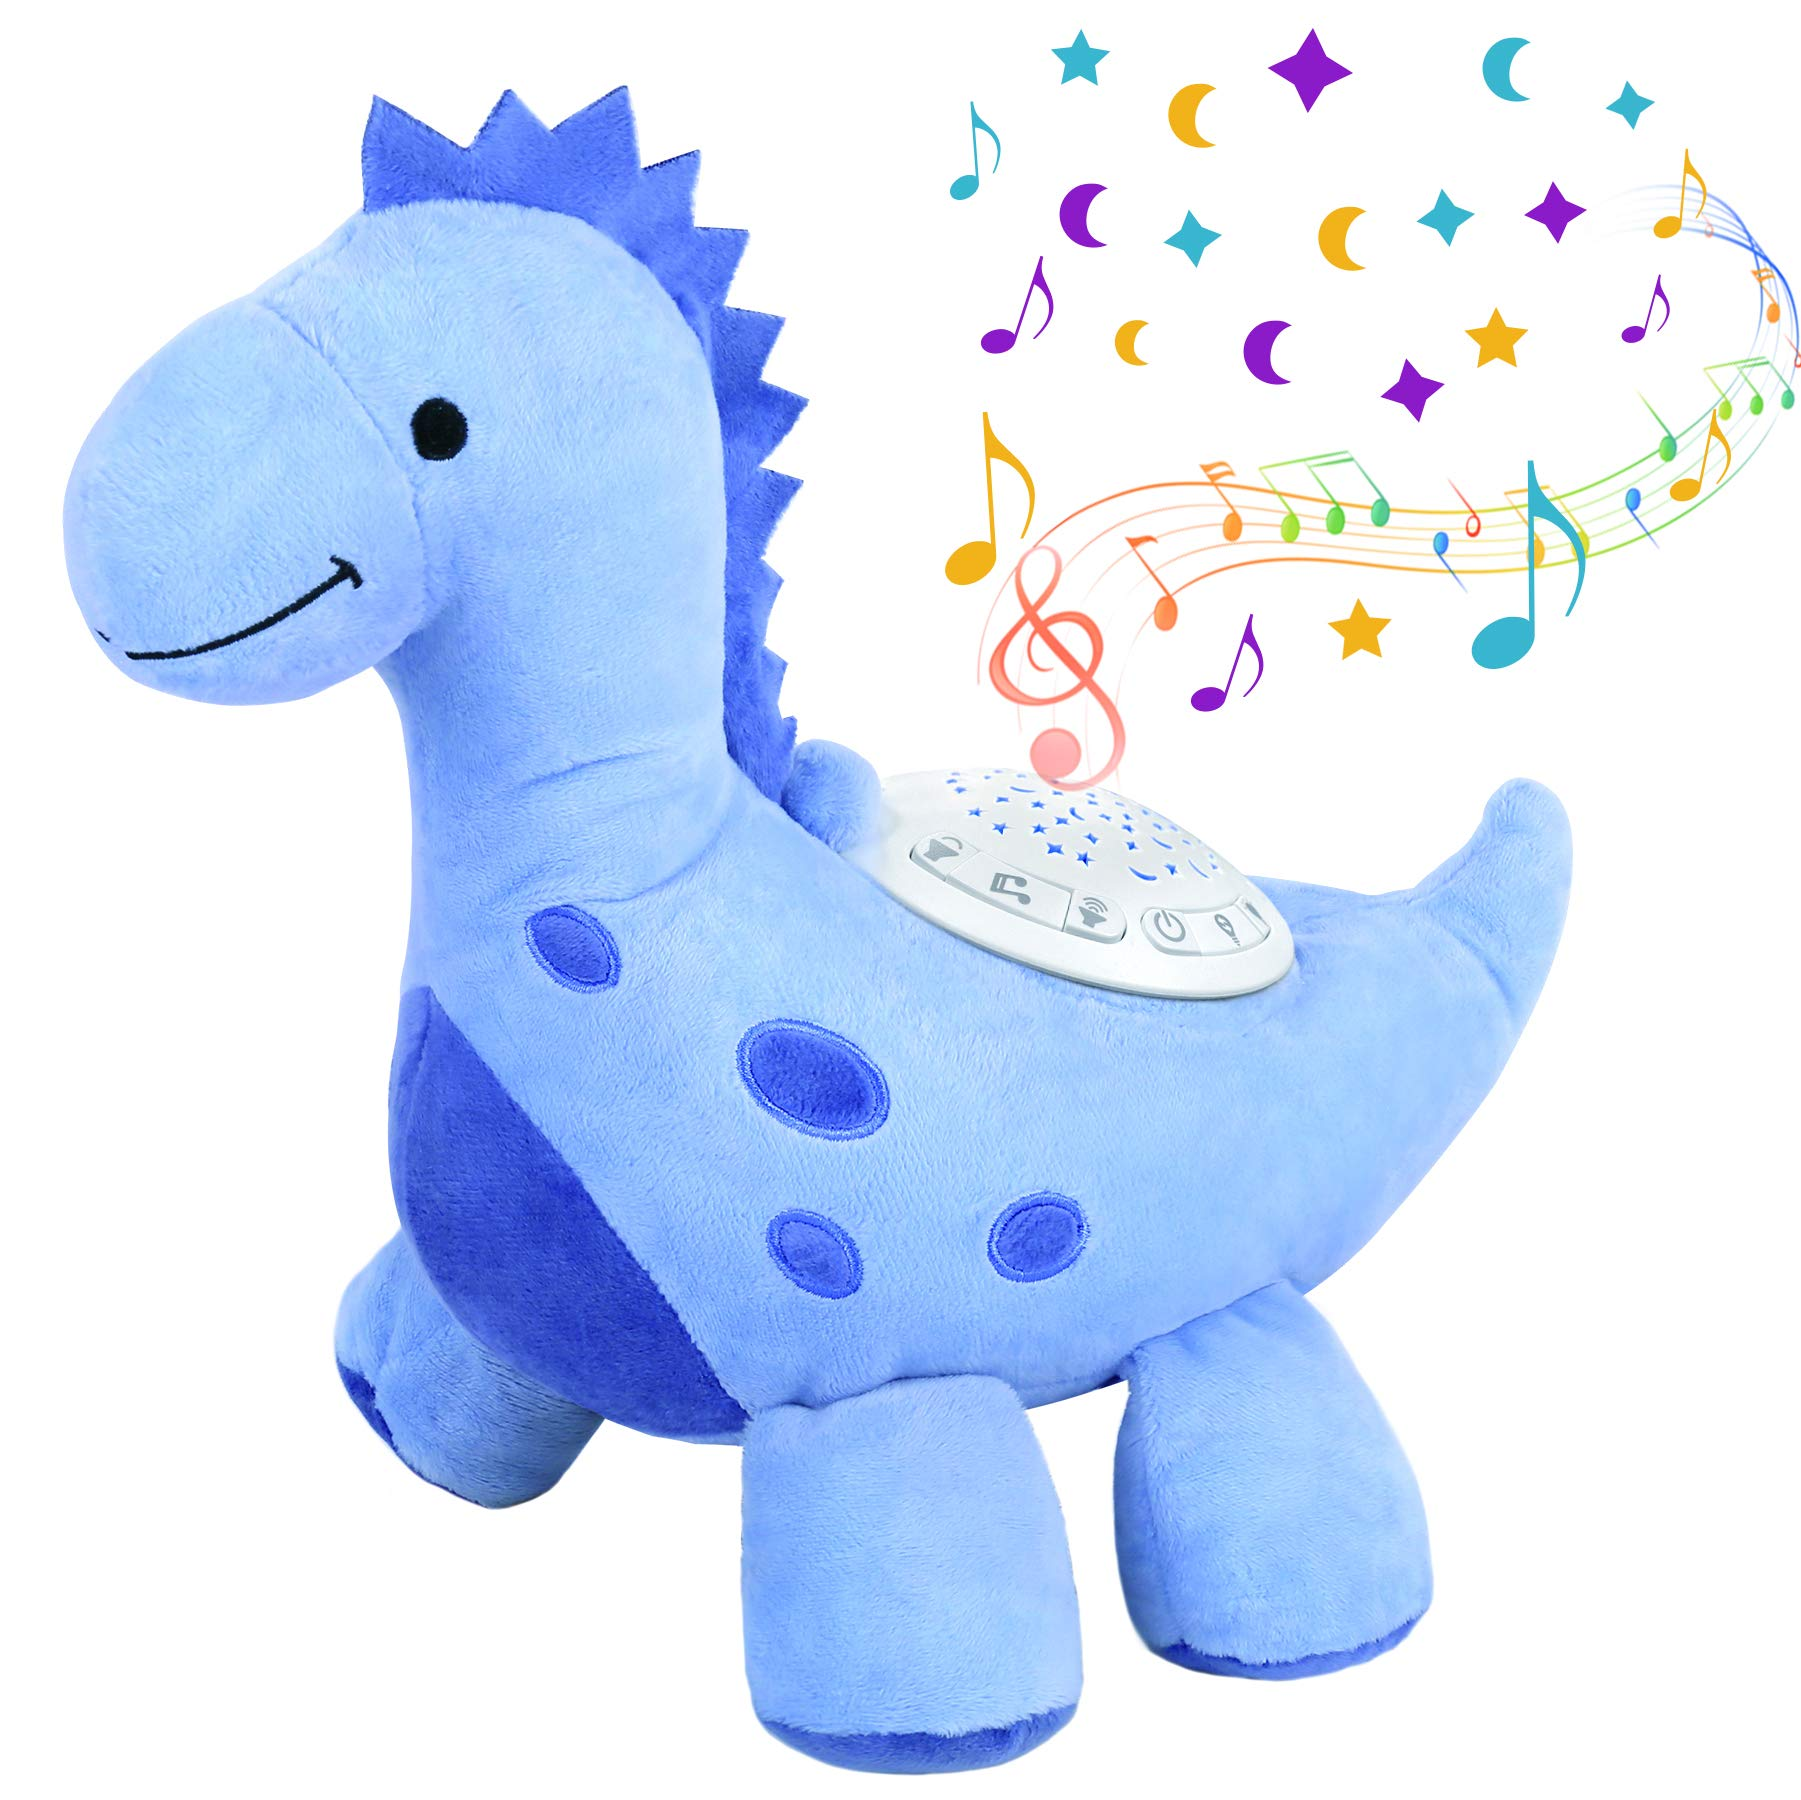 Baby Sleep Soother White Noise Machine Toddler Star Projector Sleep Aid Night Light Gift for Newborn and Up Boy and Girls Baby Sound Machine Dinosaur Plush Toy (Batteries Not Included)